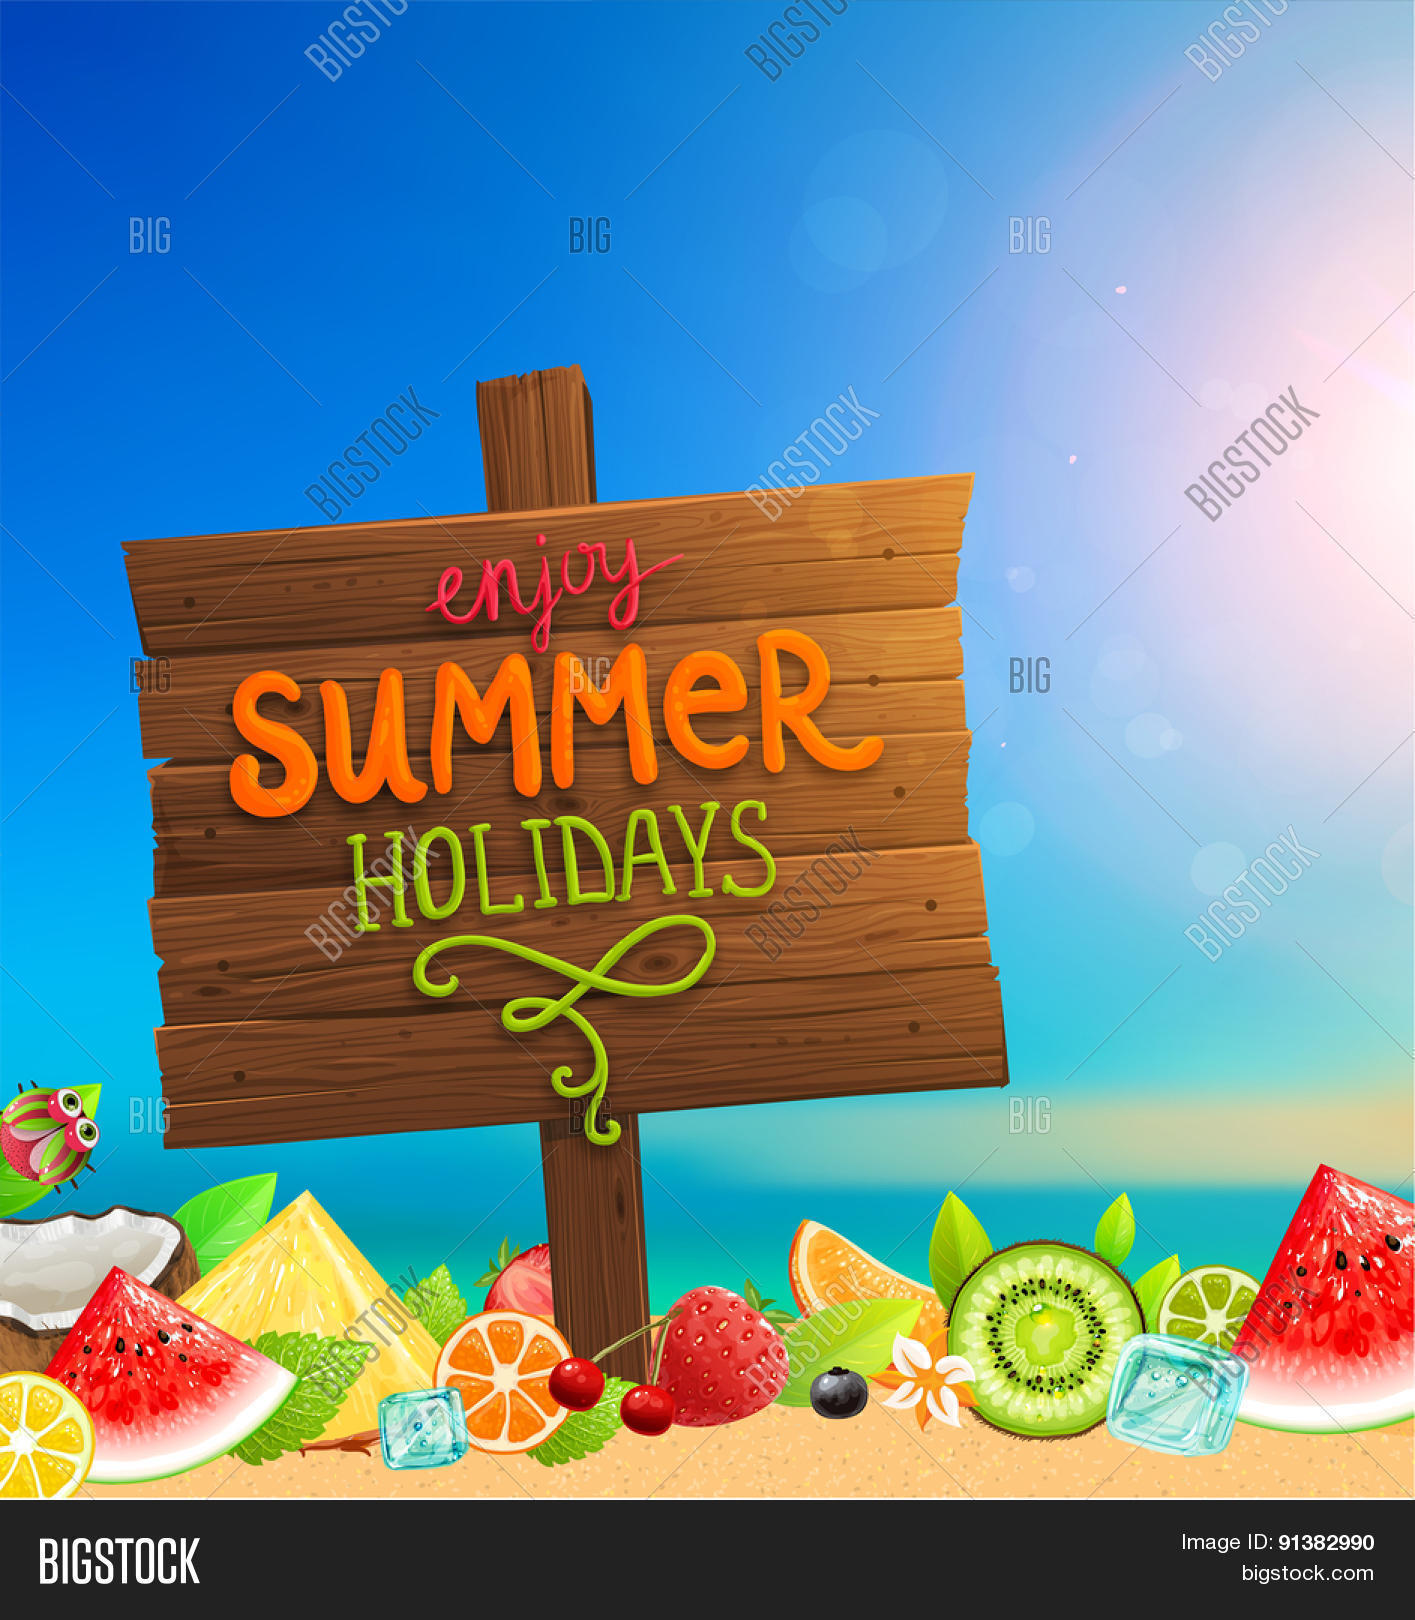 Couple Enjoying Their Summer Holidays Stock Photo: Wooden Plaque With Enjoy Summer Holidays Lettering